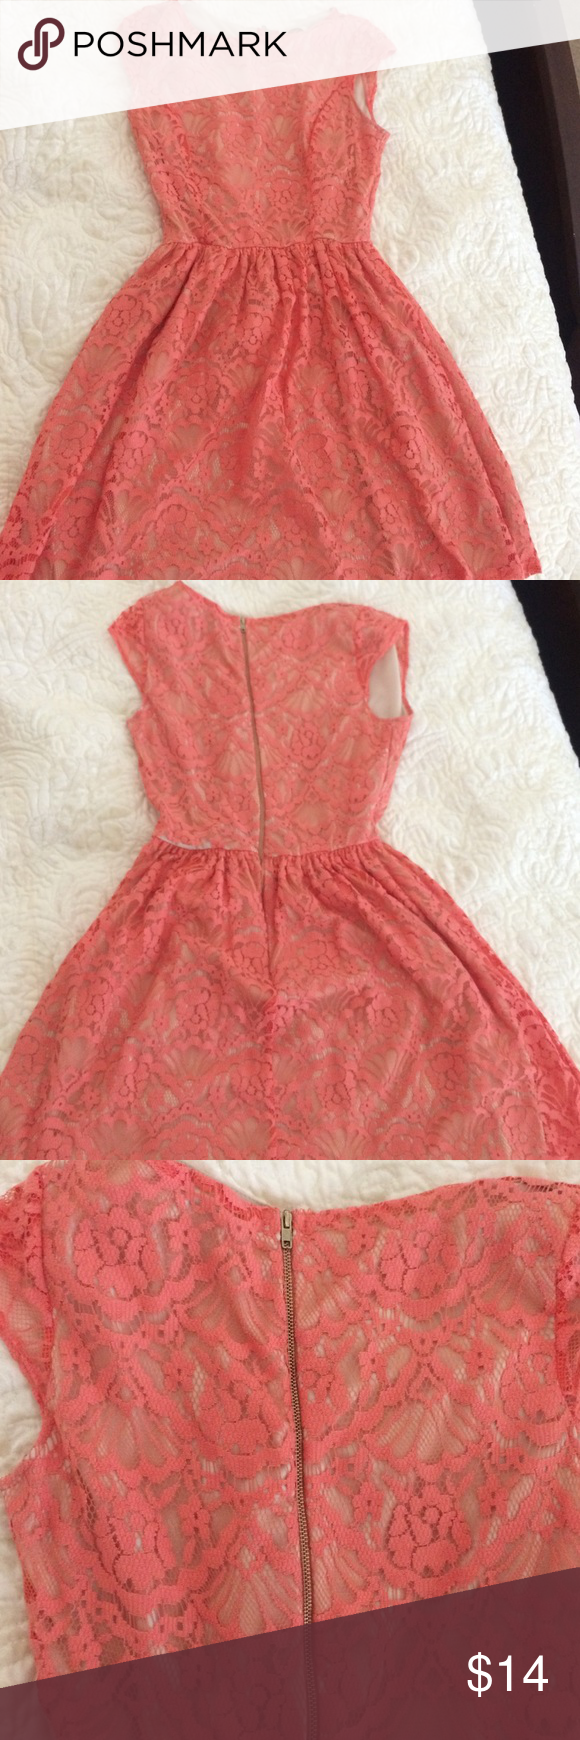 Peach lace summer dress Can be worn casually or for a special occasion. Good condition. Size medium, but fits like a small. Zipper in tact. PRICE NEGOTIABLE** Dresses Mini